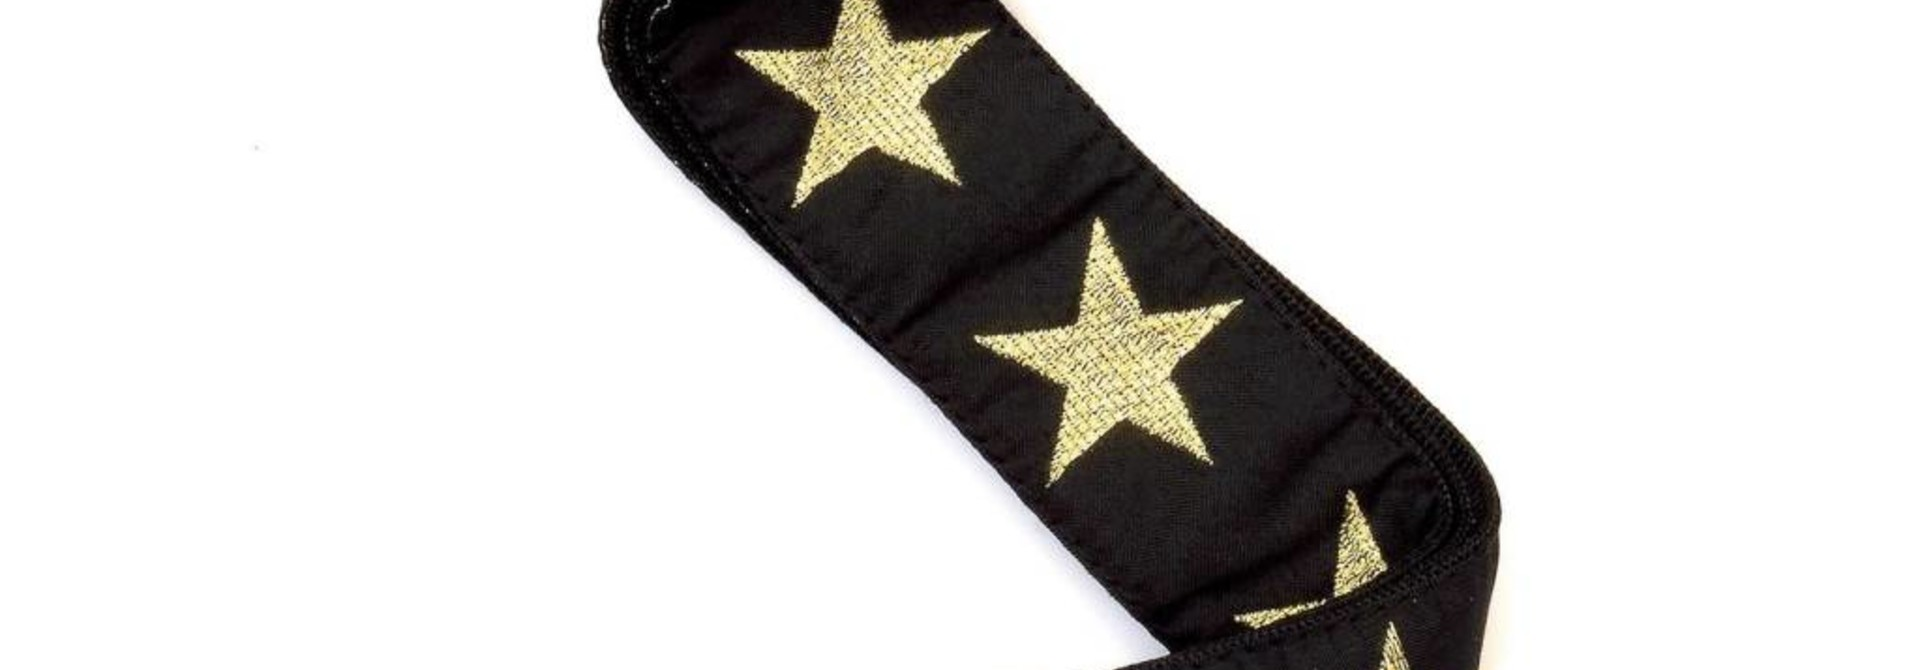 Woven gold star strap